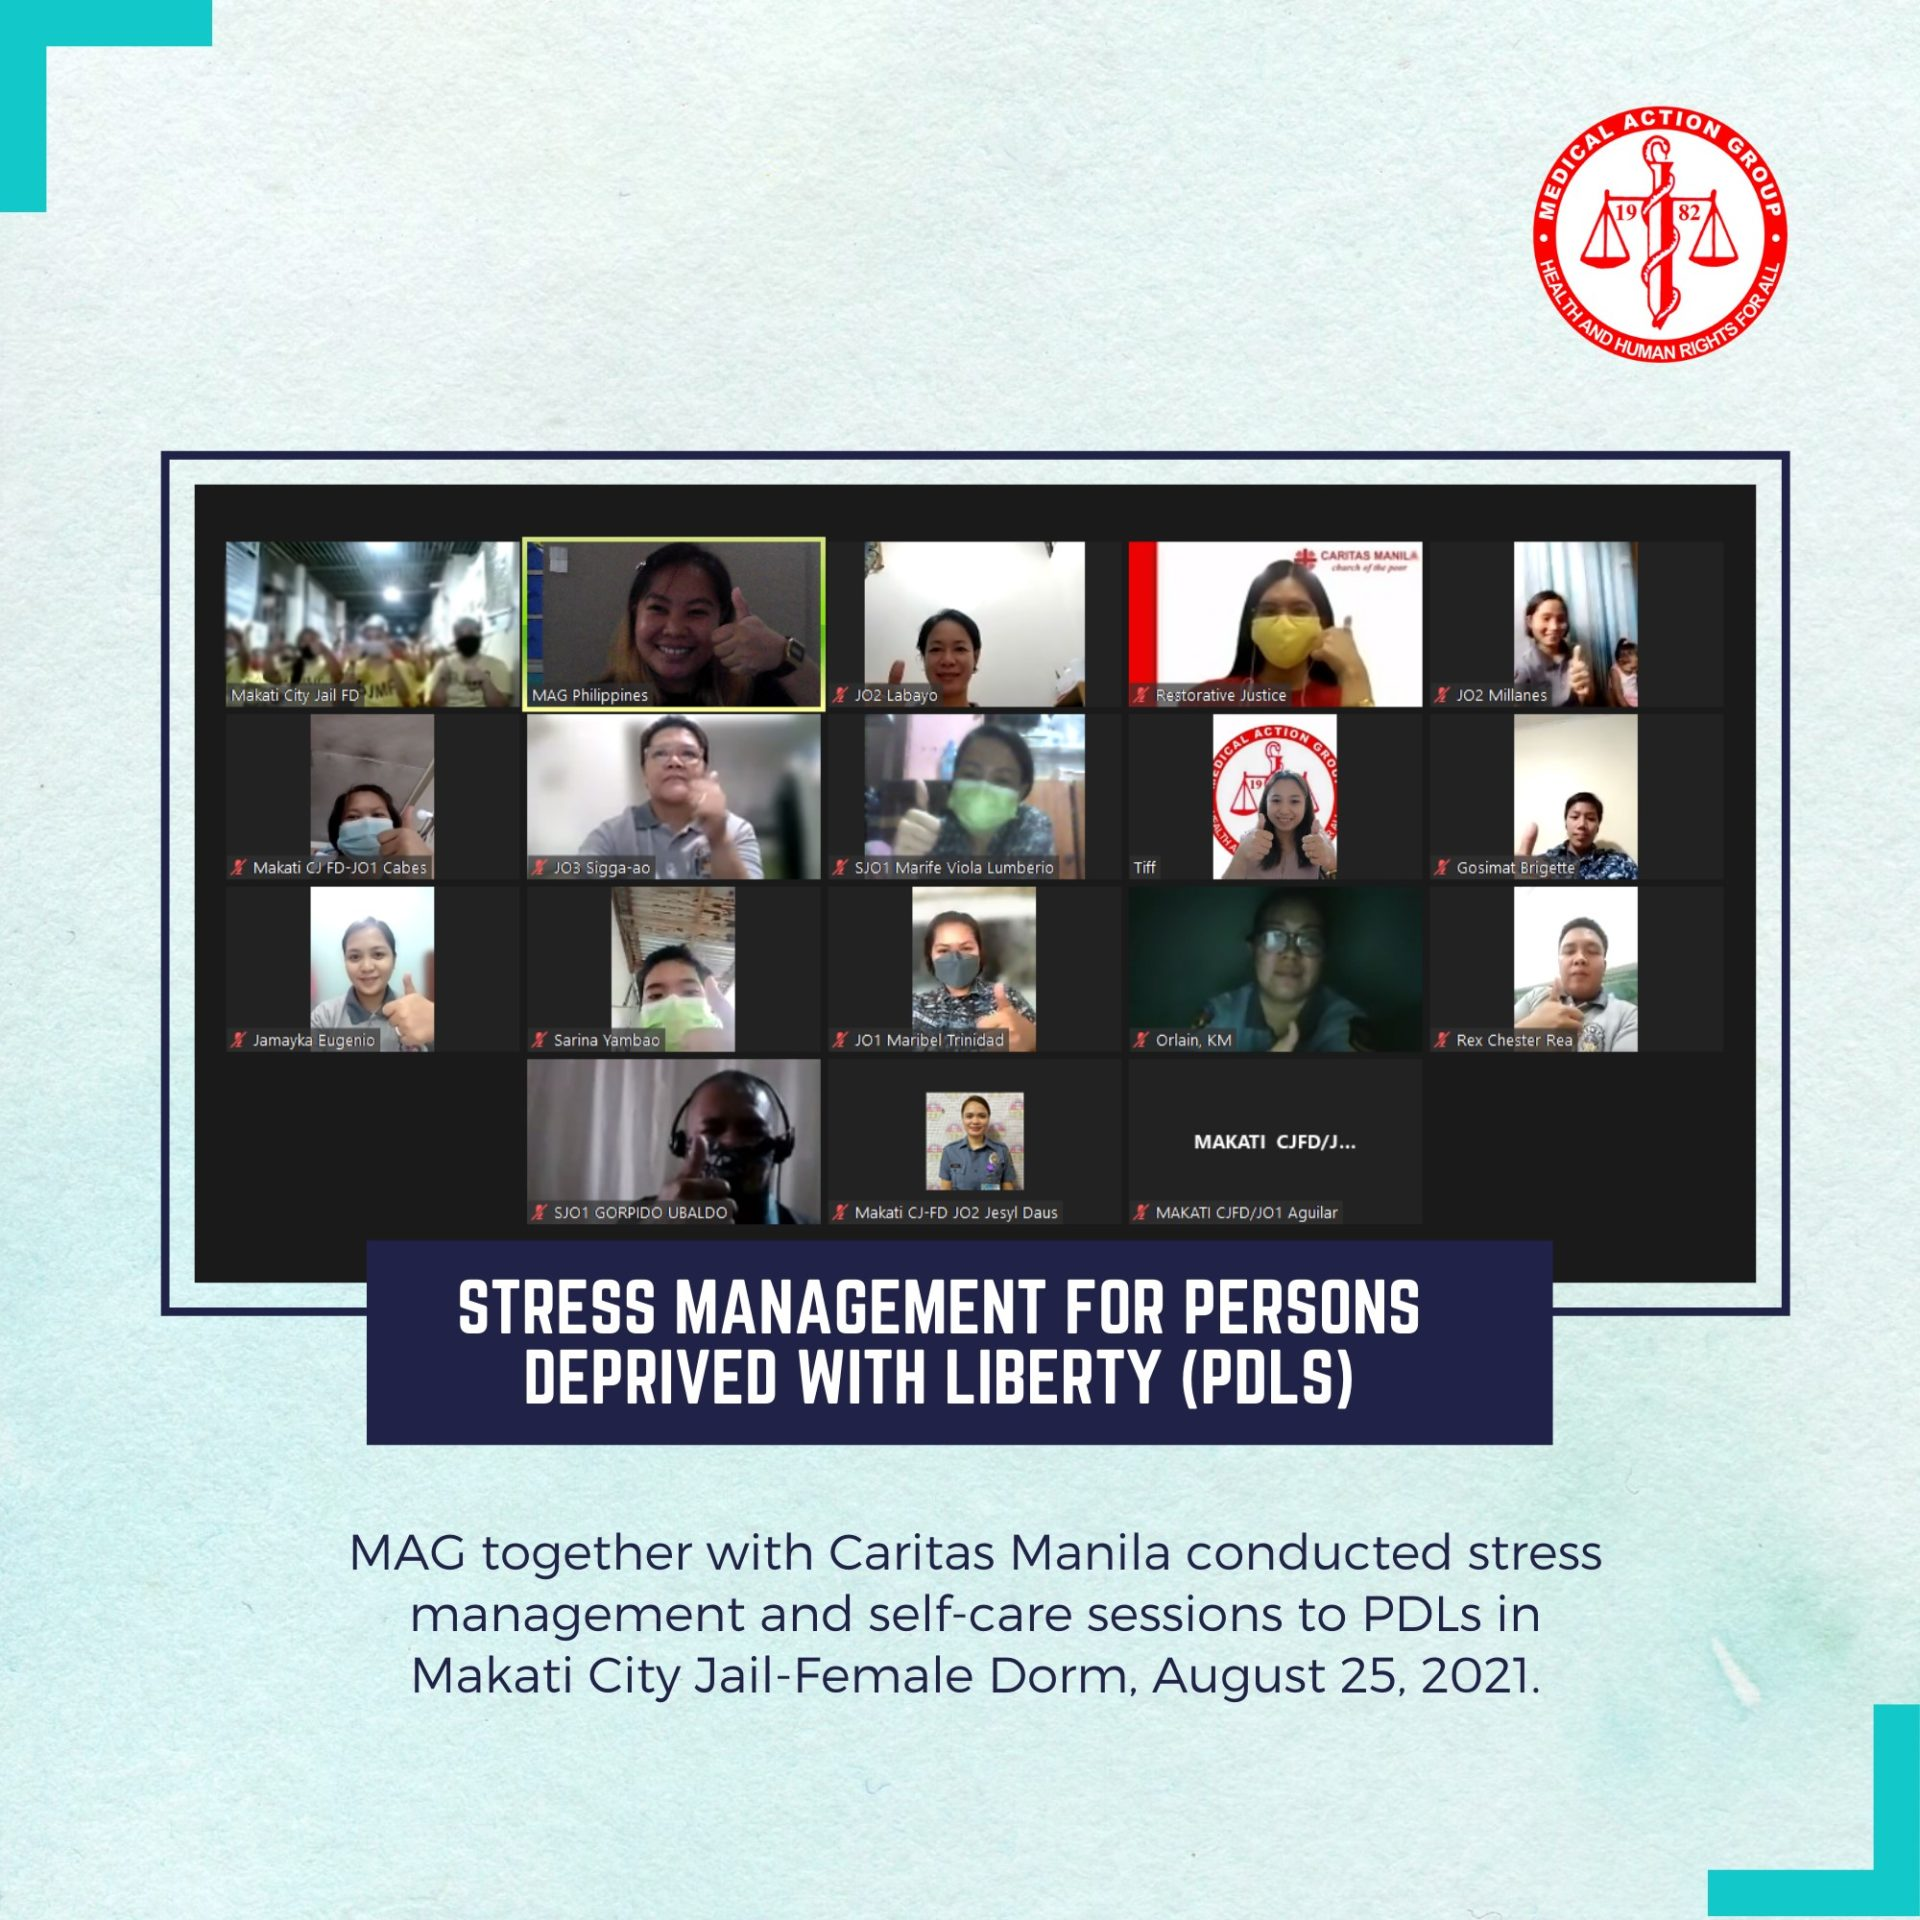 Stress Management for Persons Deprived of Liberty (PDLs) in some Metro Manila Jails